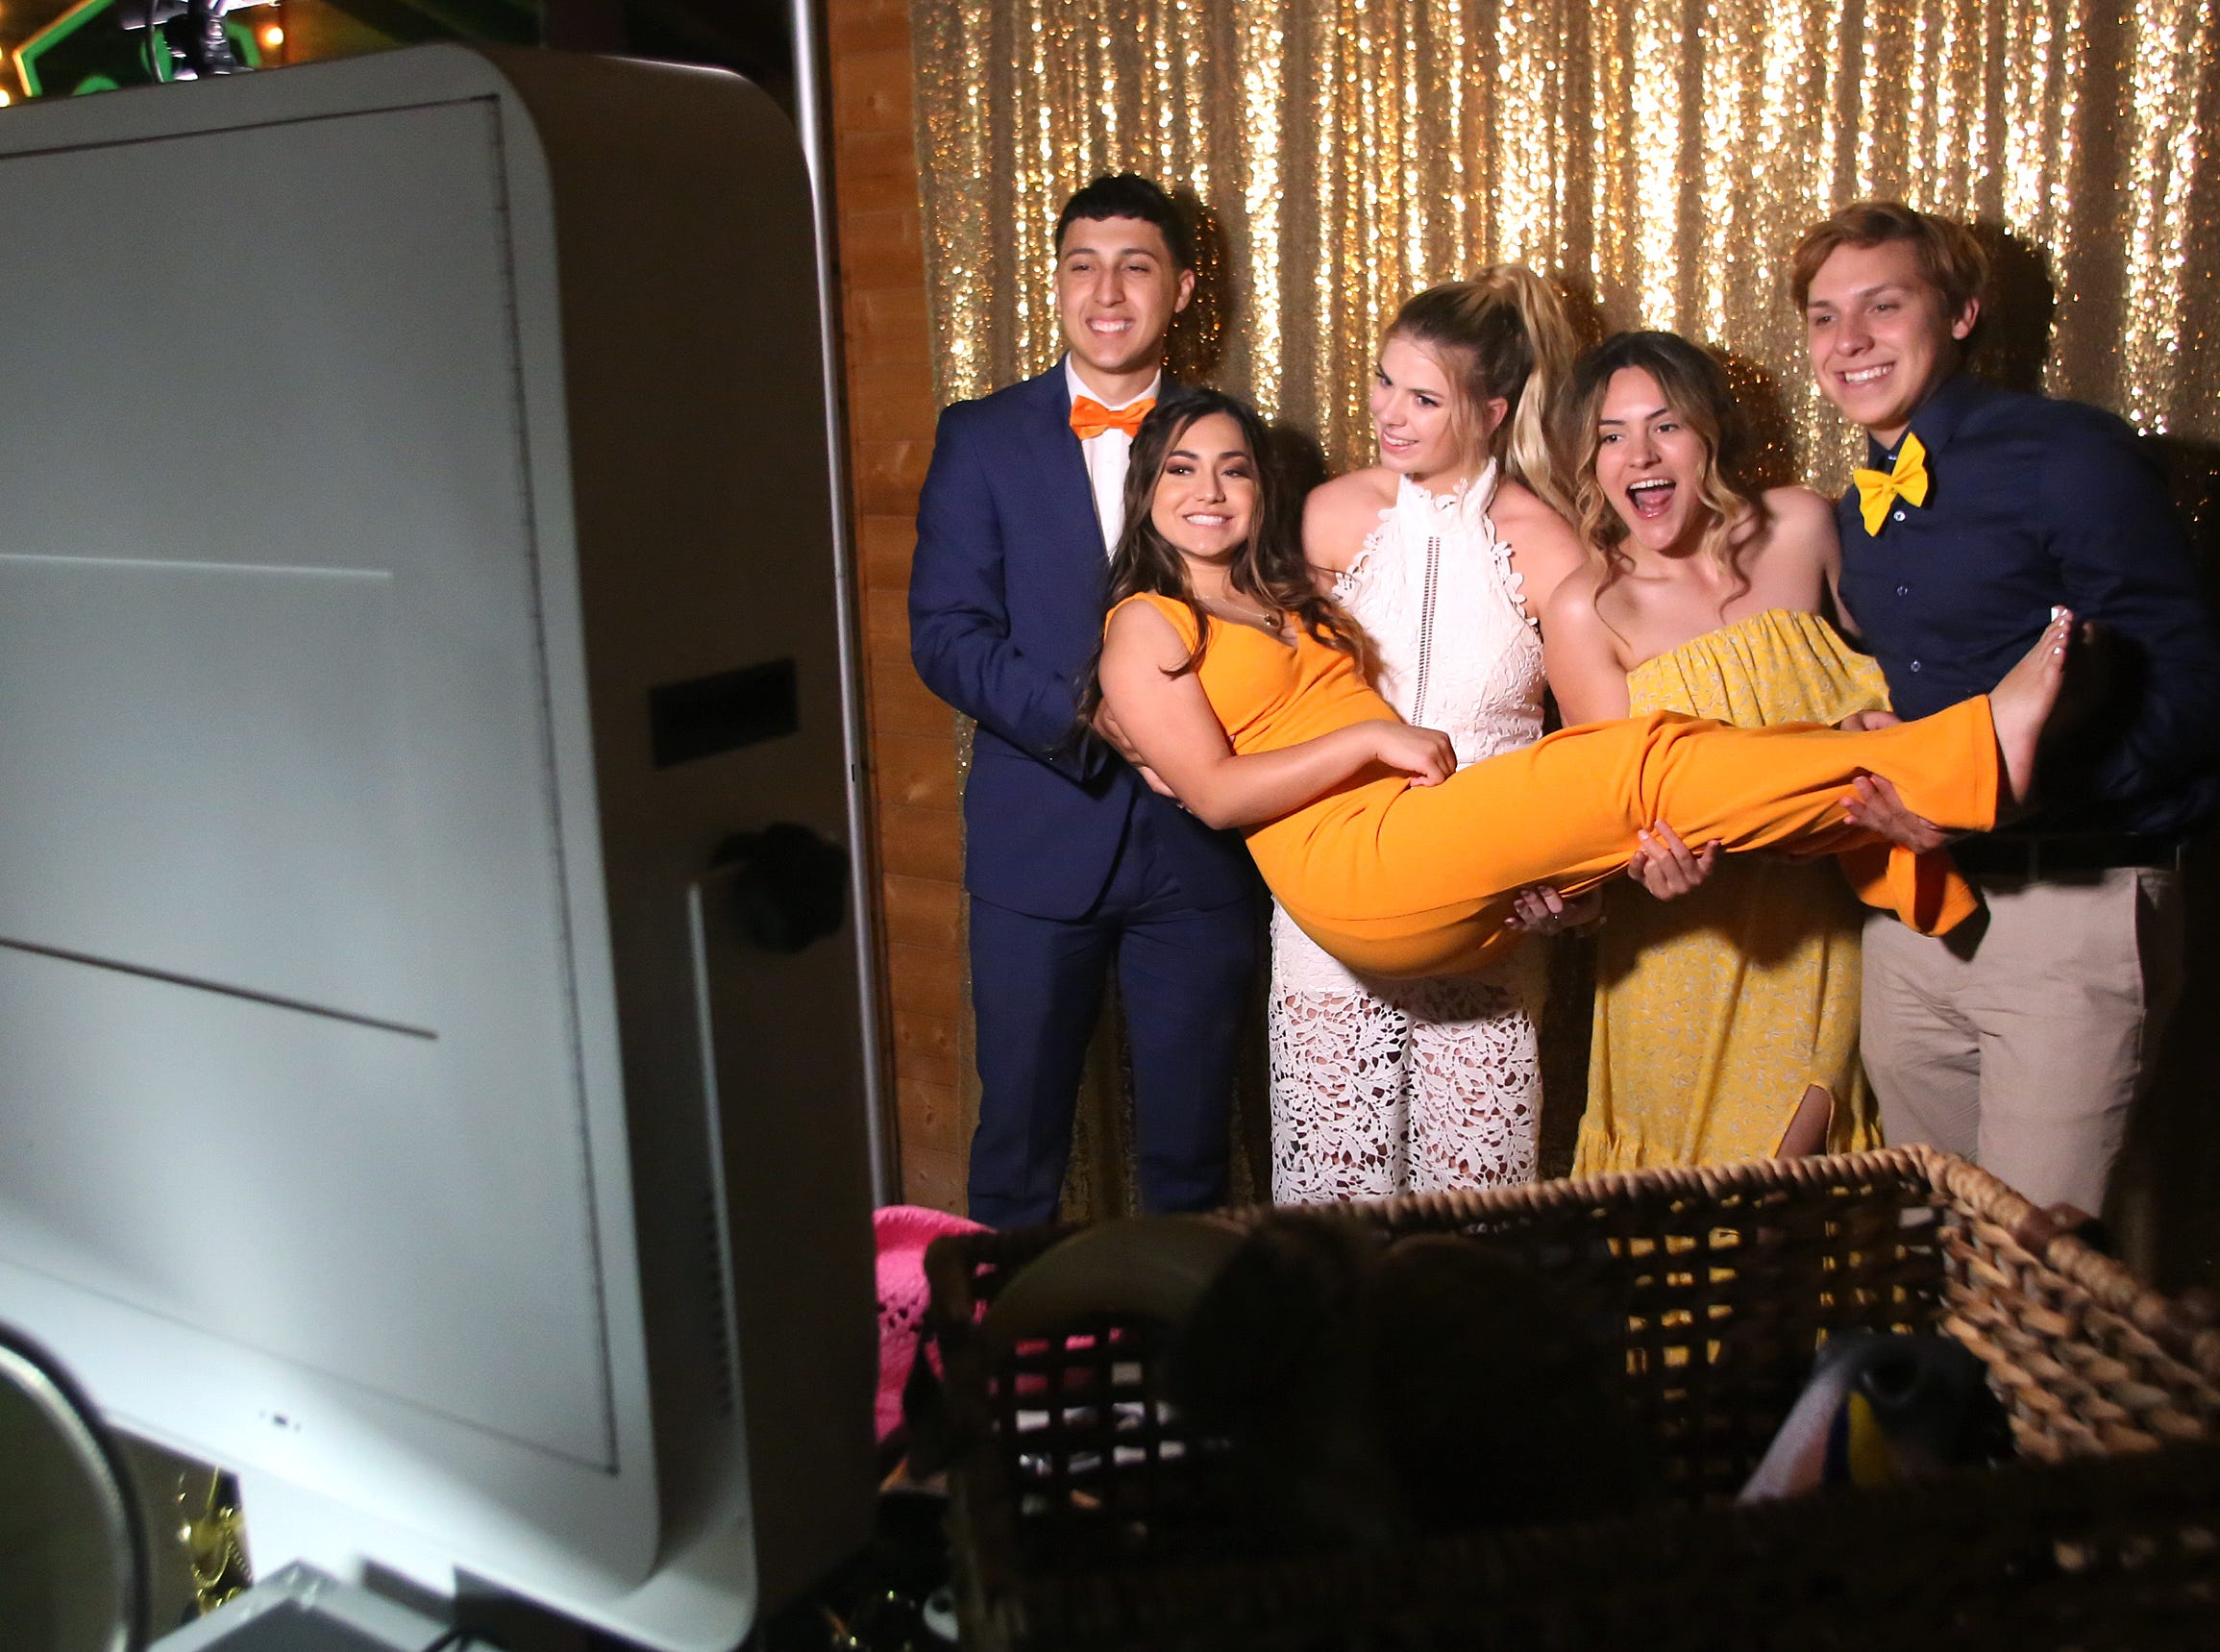 Jonathon Guerra, Mackenzie Williams, Shady Gonzales and Bryce Buchanan hold up Aliyah Alvarez in the photo booth at this year's Exeter Union High School prom Saturday, May 4, 2019 in Woodlake, Calif.